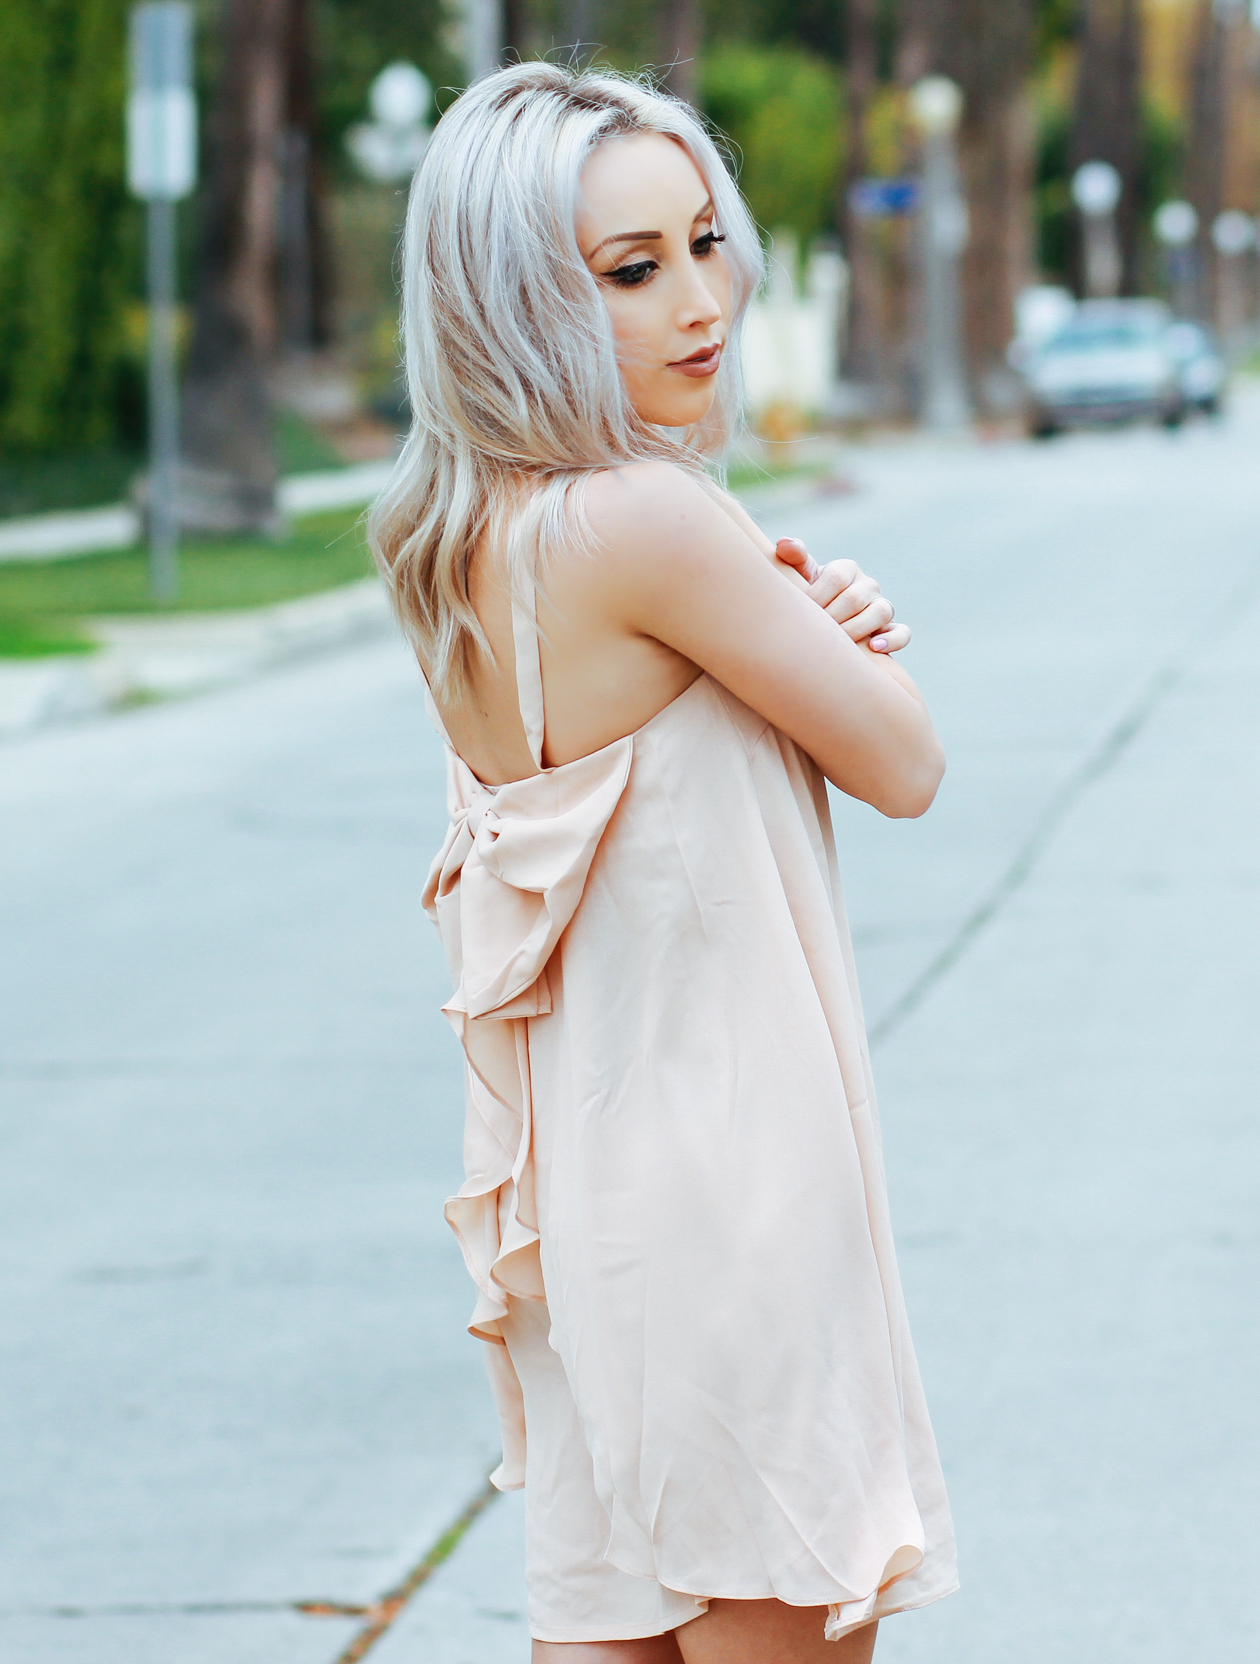 Pink Bow Dress | BlondieInTheCity.com